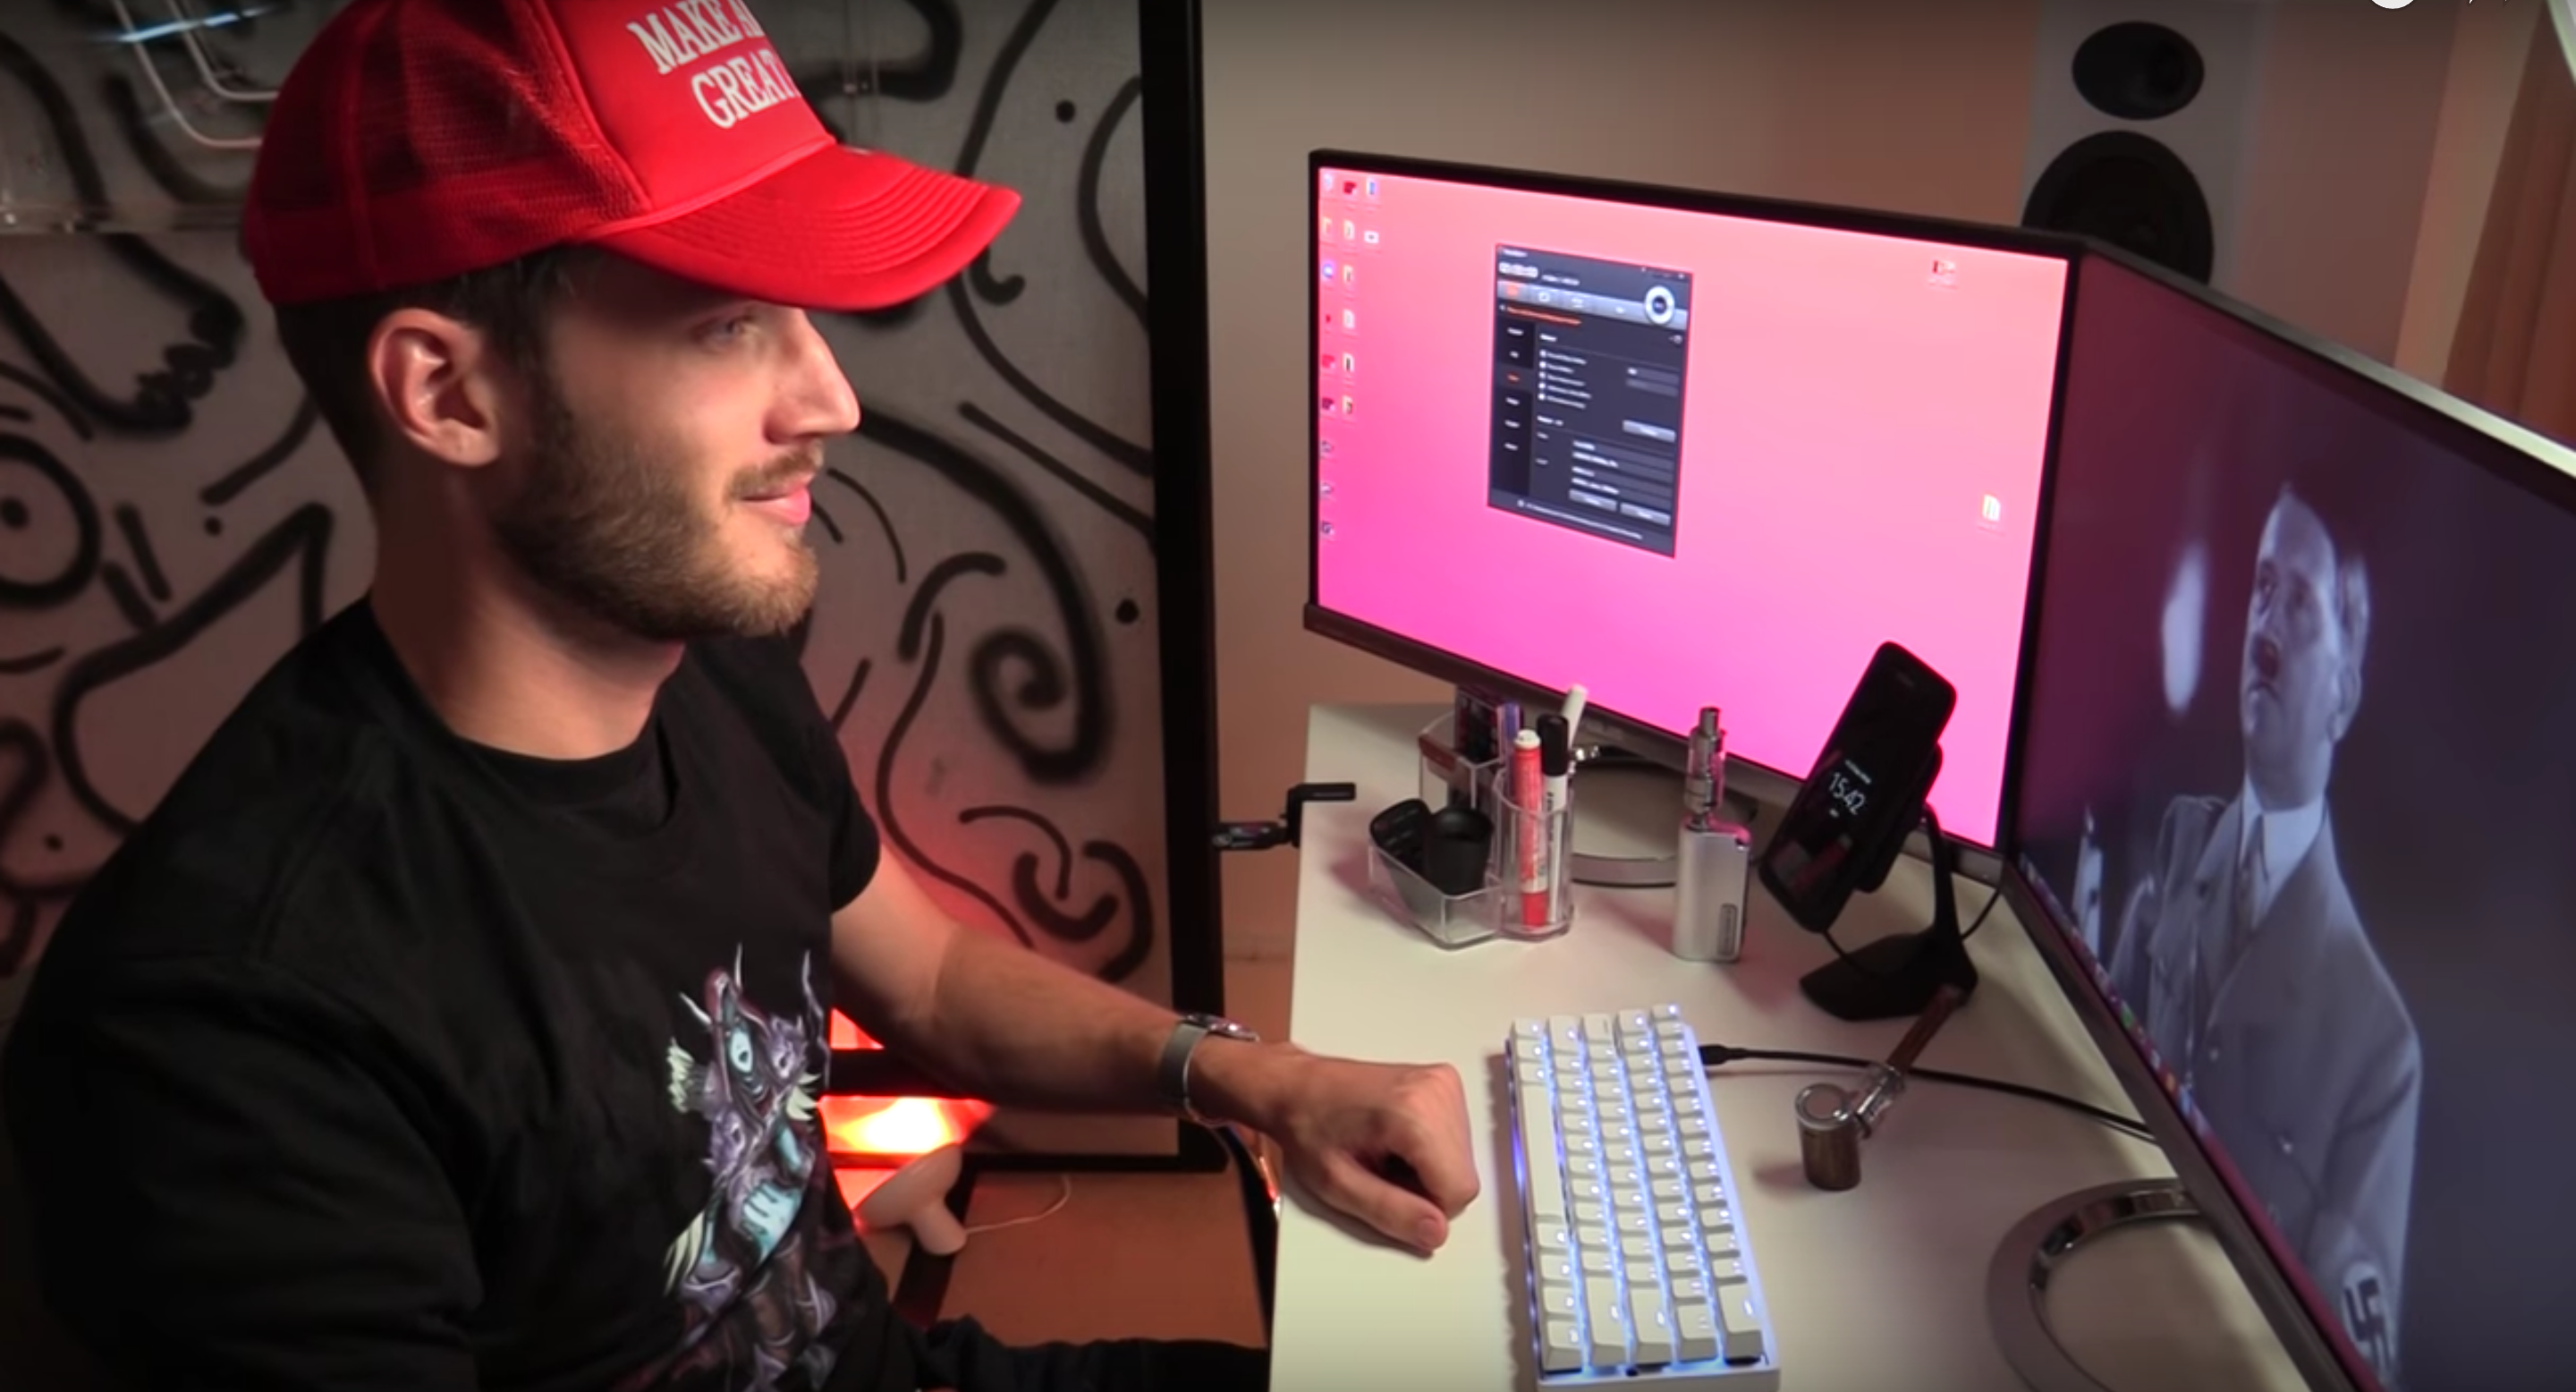 PewDiePie Gets Dropped By Disney After Anti-Semitic Videos